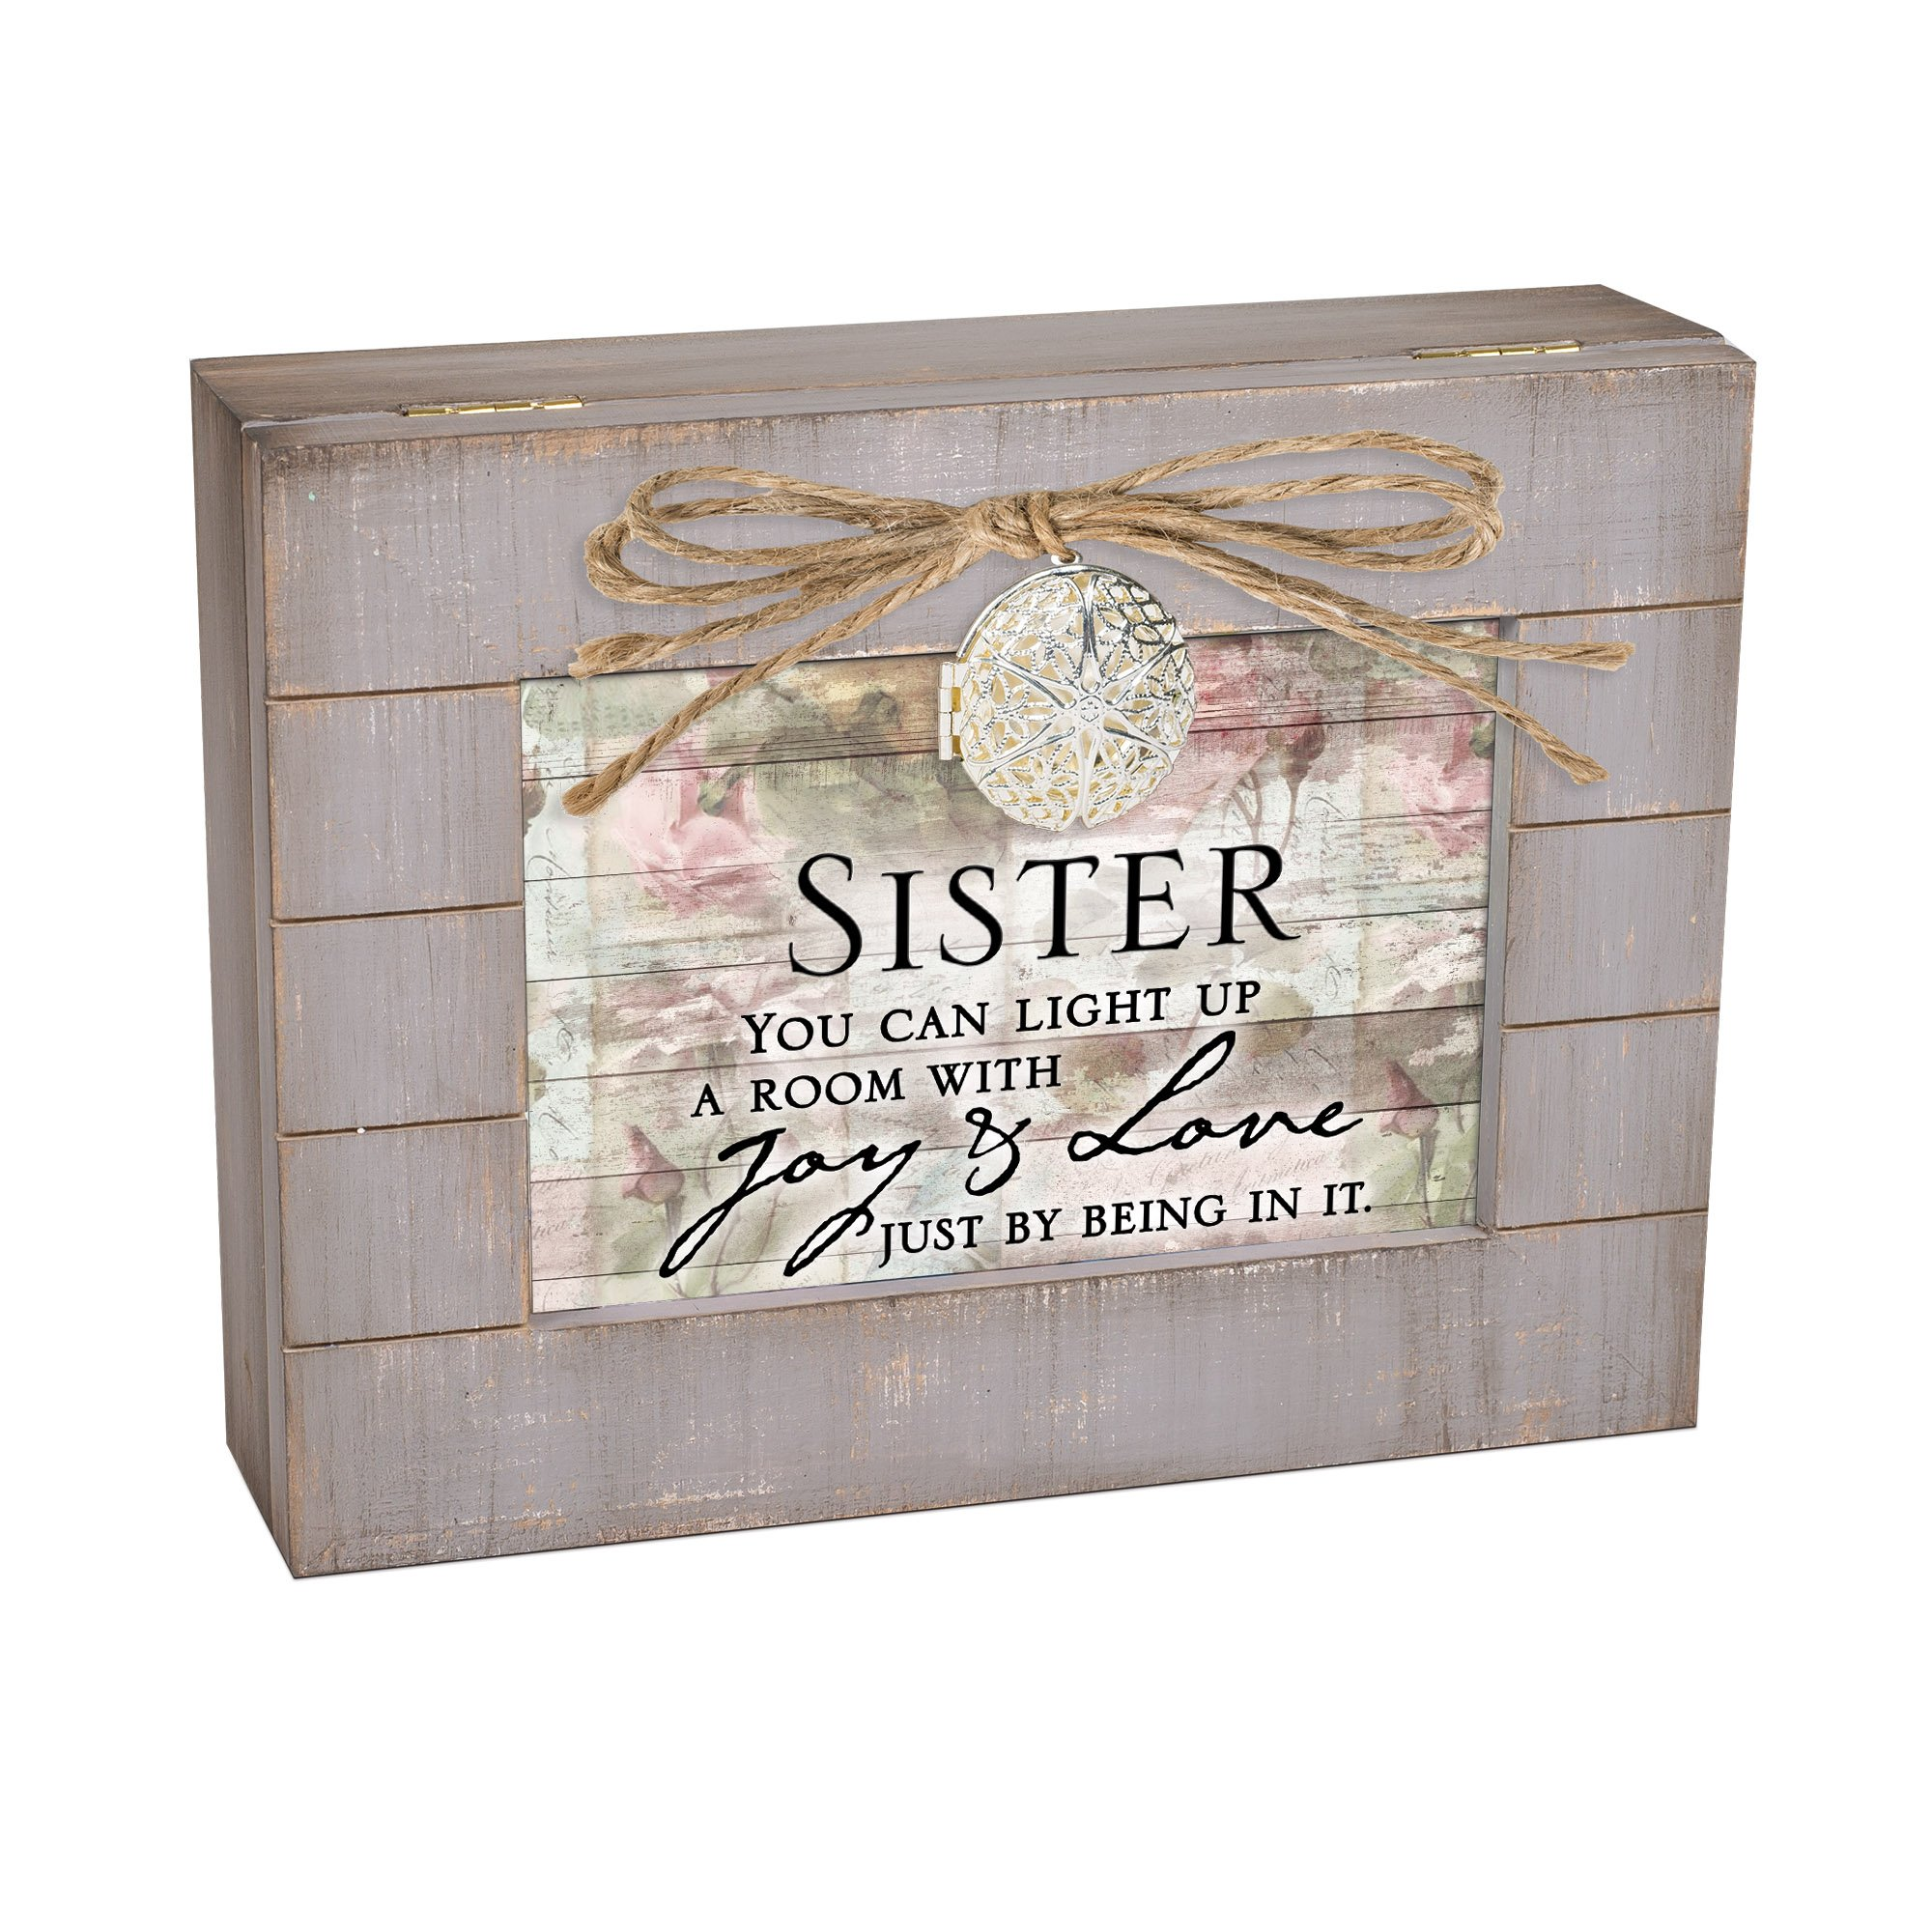 Cottage Garden Sister Light Up Room with Joy Grey Distressed Locket Music Box Plays Edelweiss